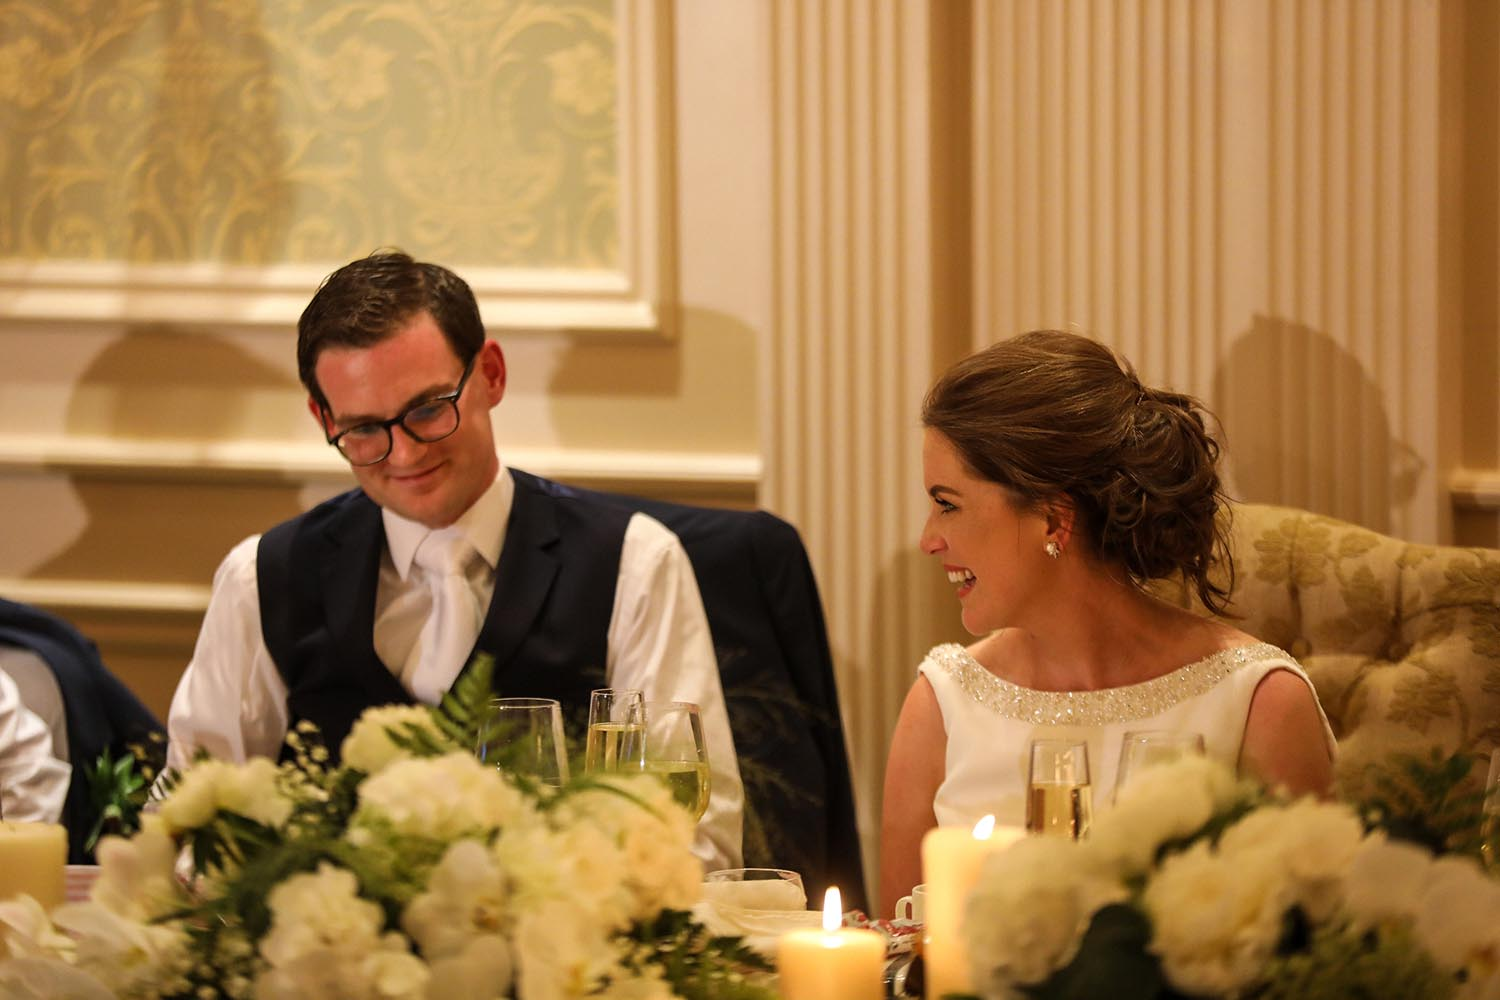 Couple smiling during their wedding meal